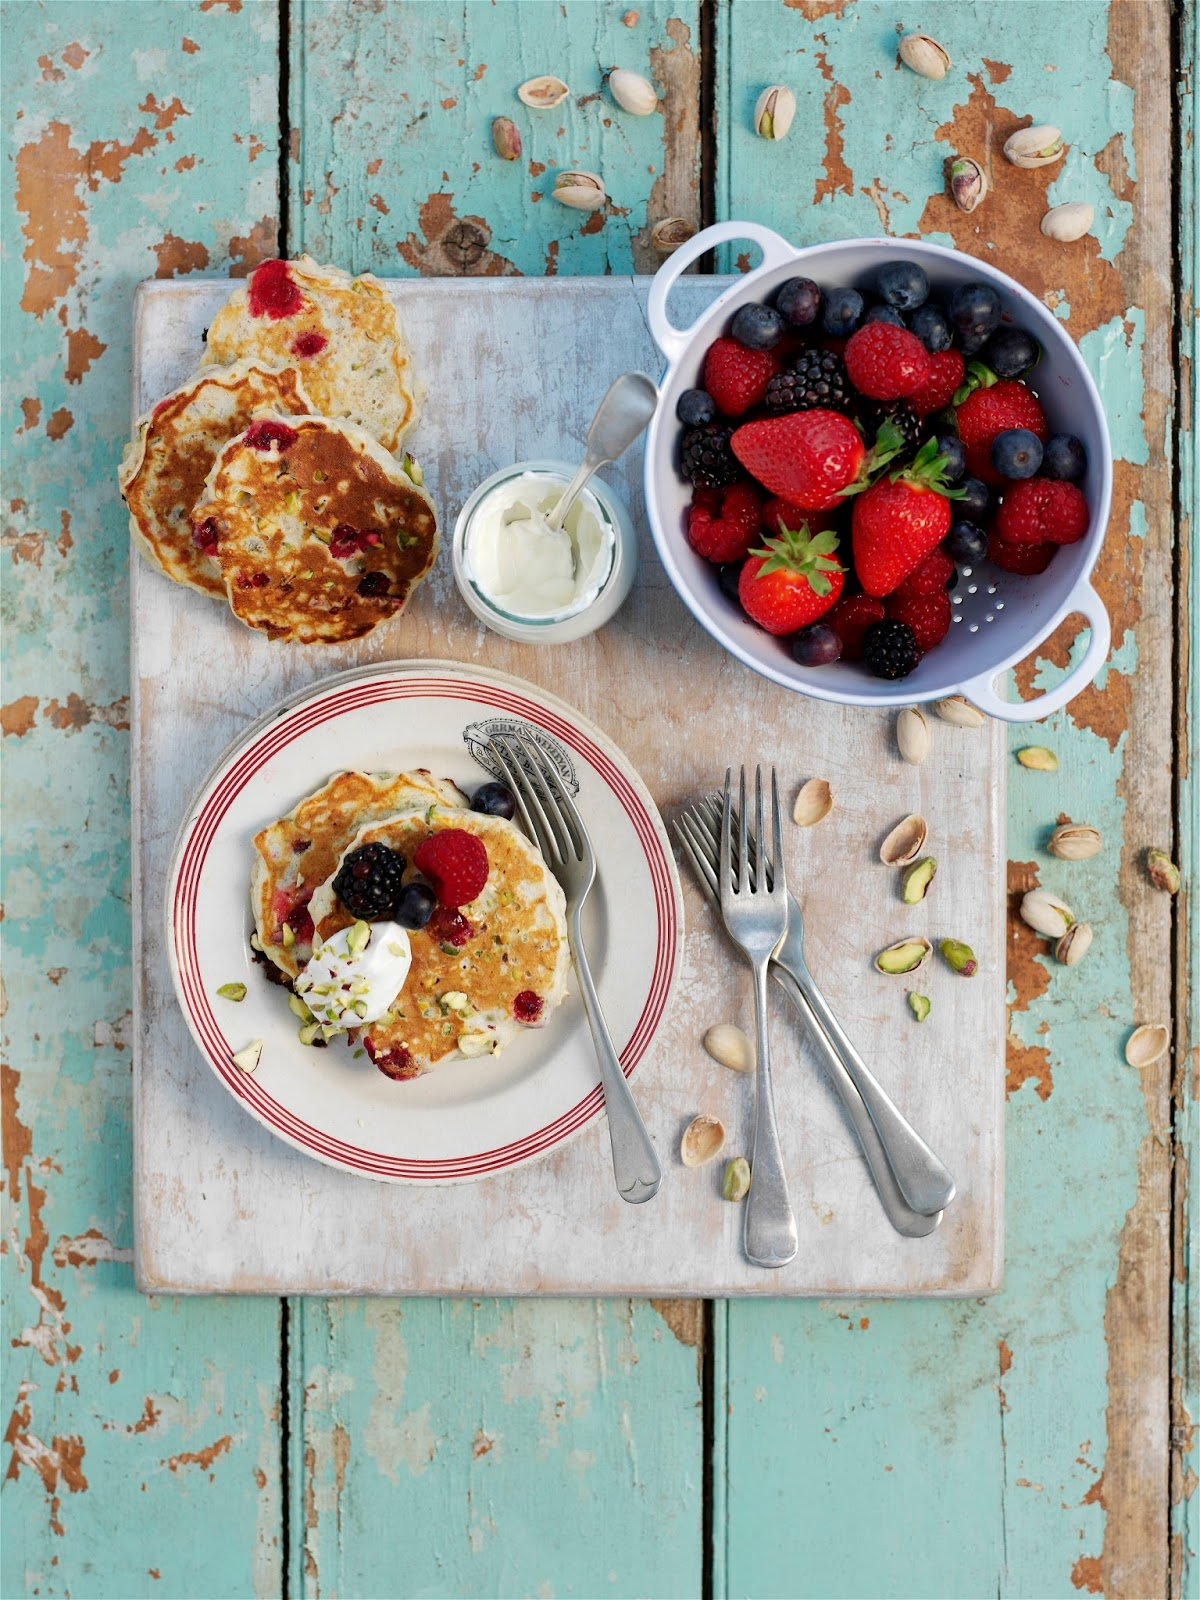 Pistachio, Oat And Cranberry Breakfast Pancakes